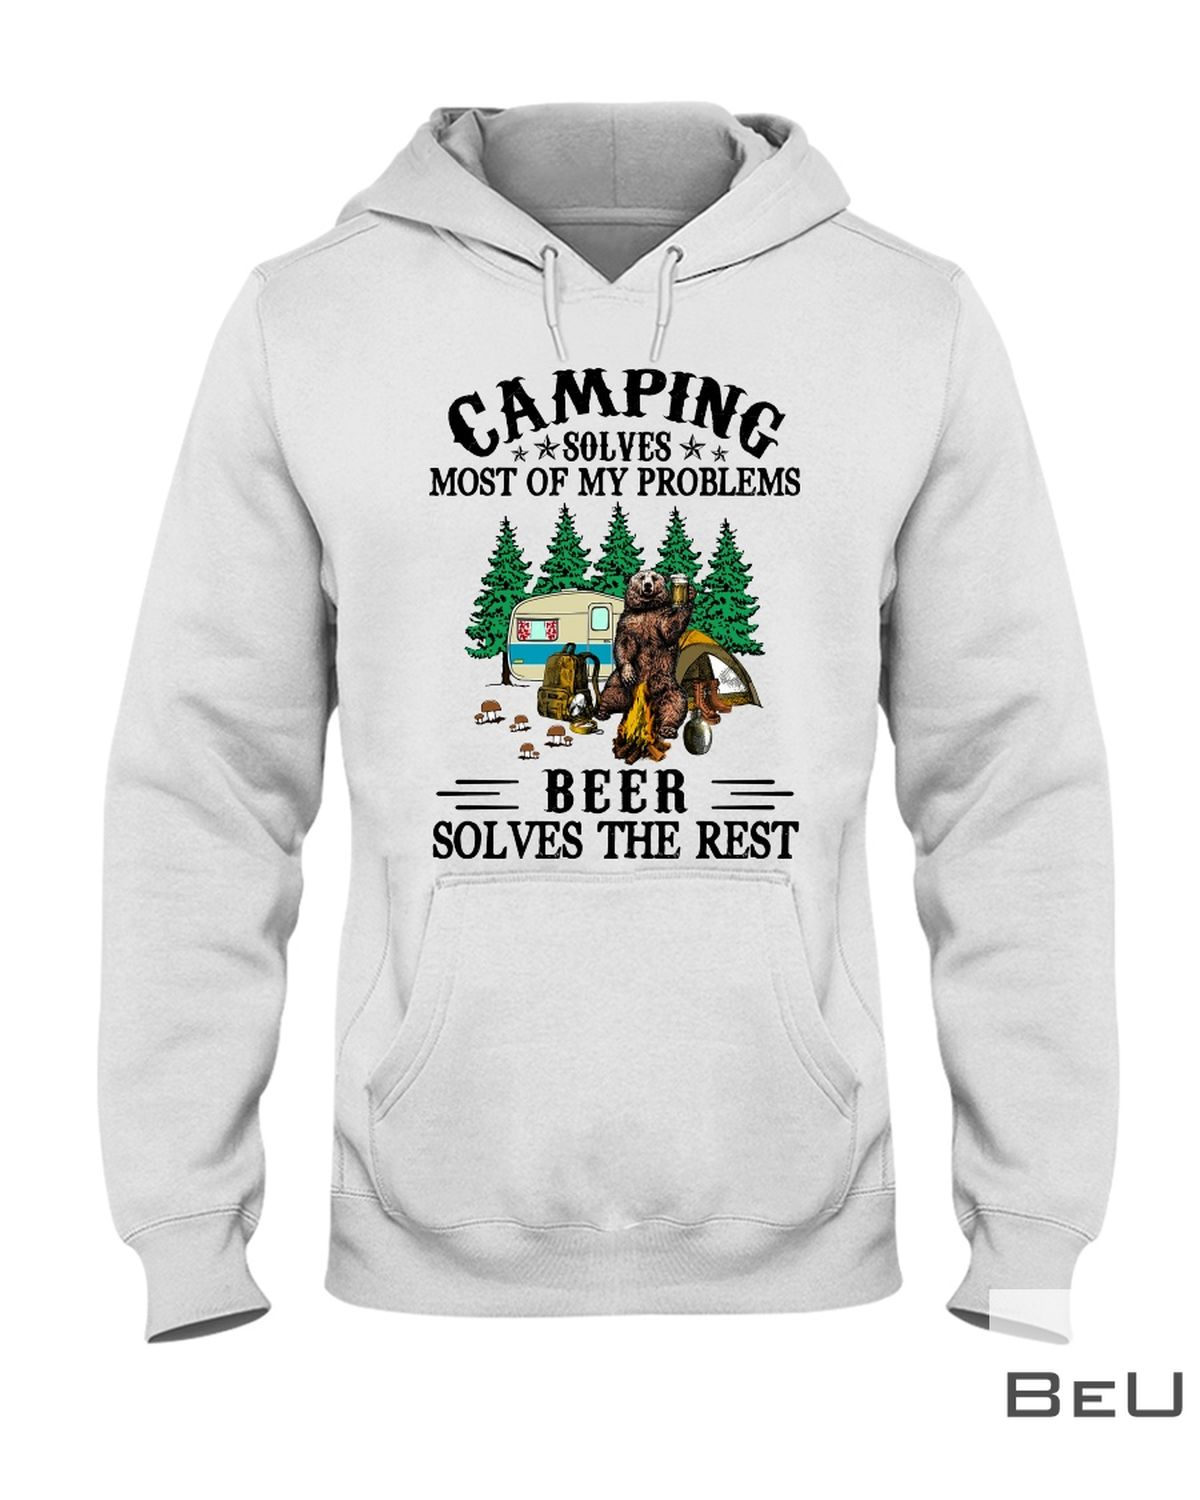 Camping Solves Most Of My Problems Beer Solves The Rest Shirt